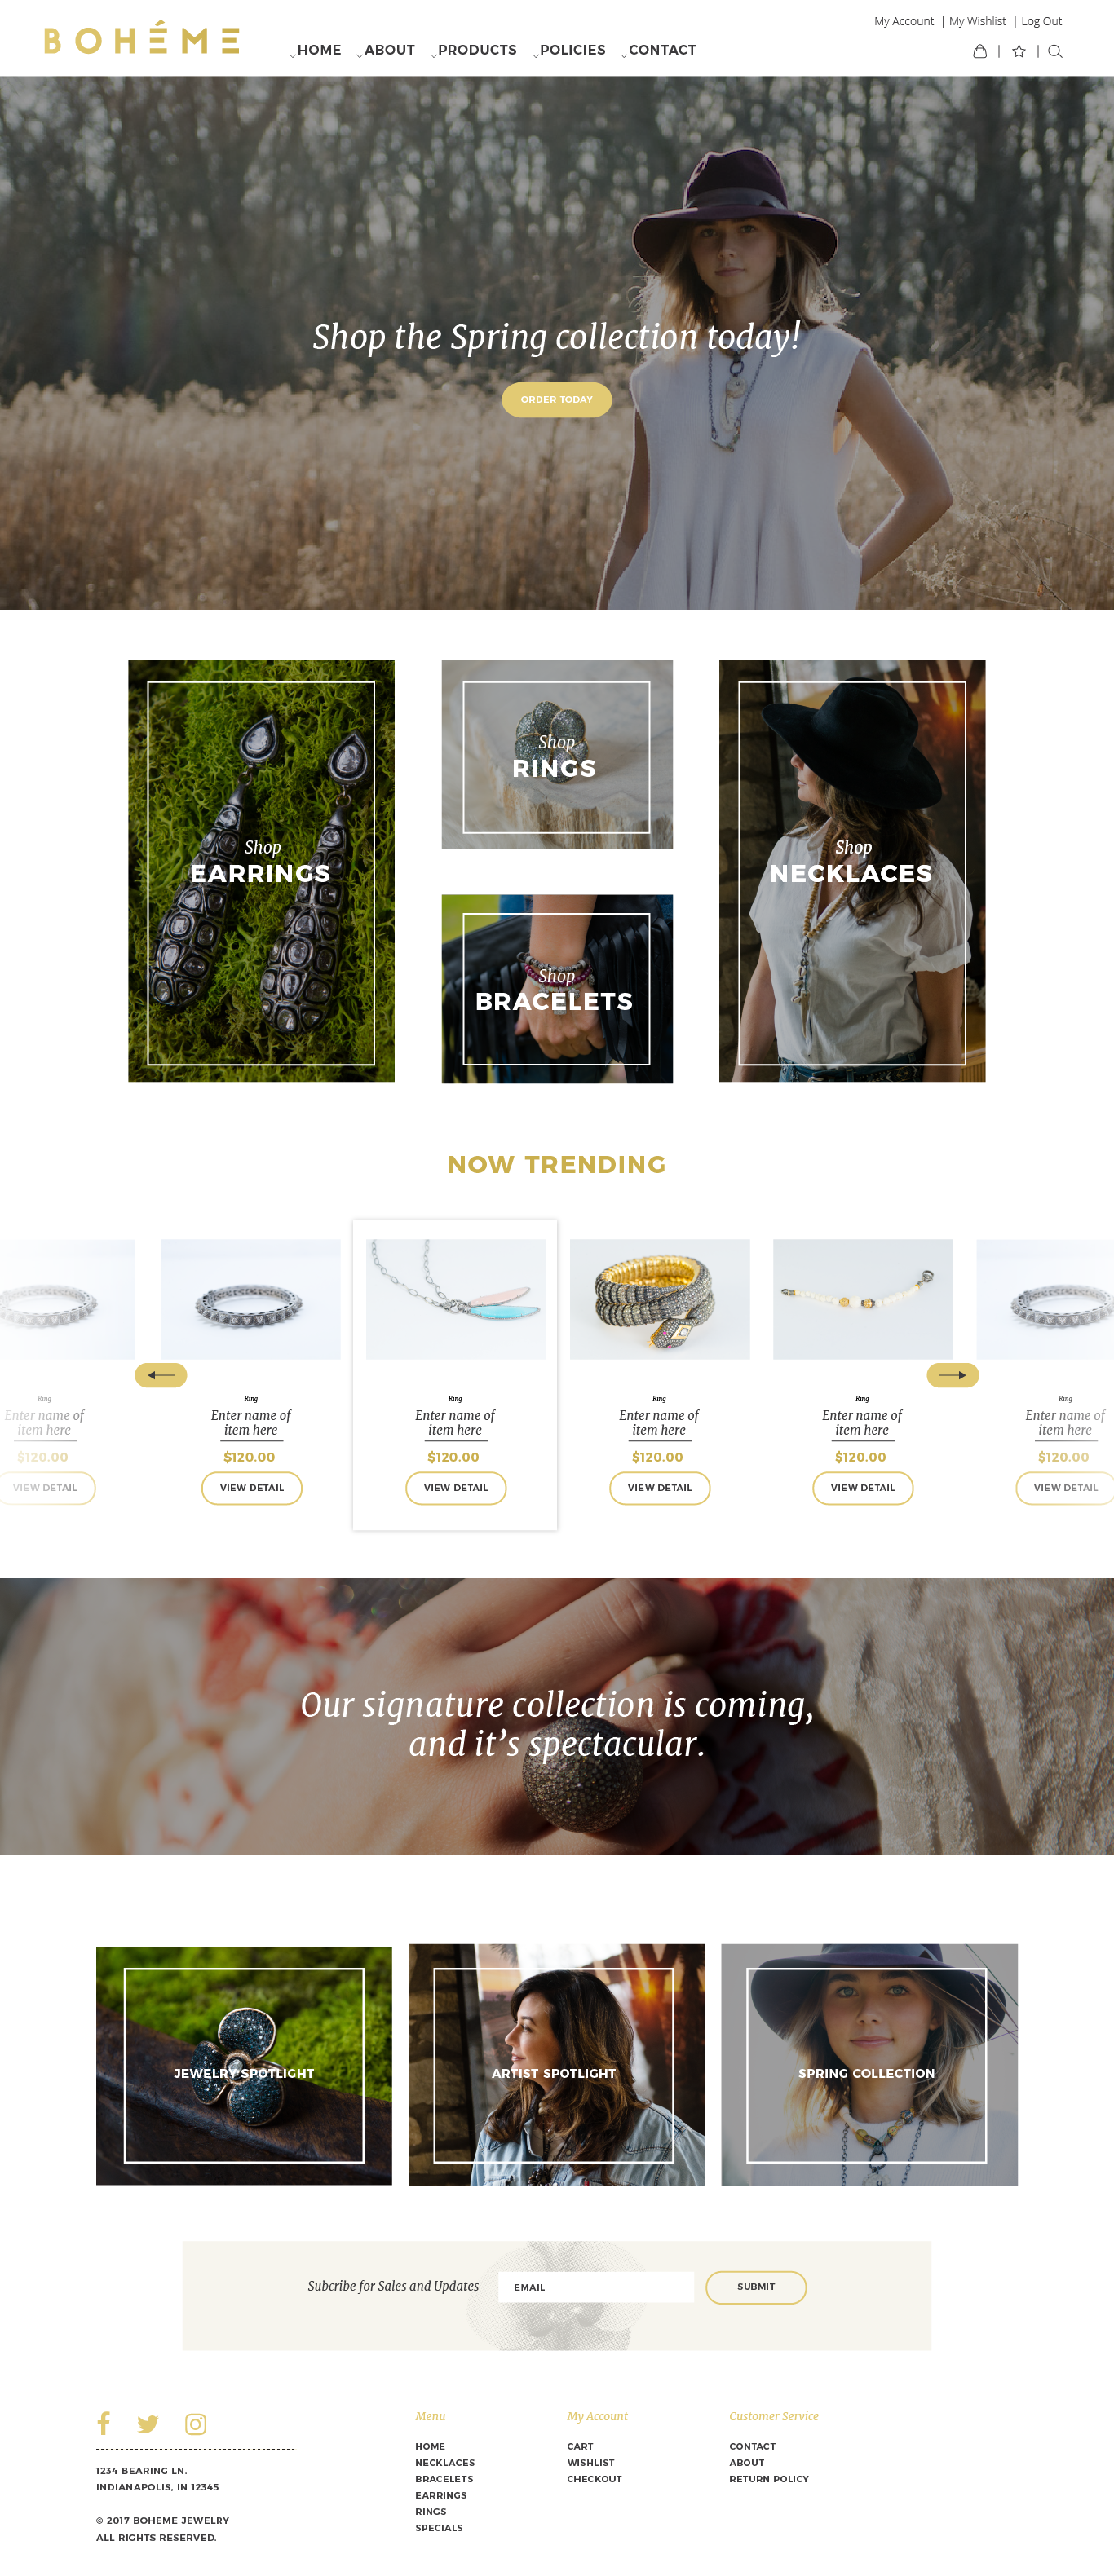 Boheme Jewelry Homepage Website Mockup K. Karnes Designs